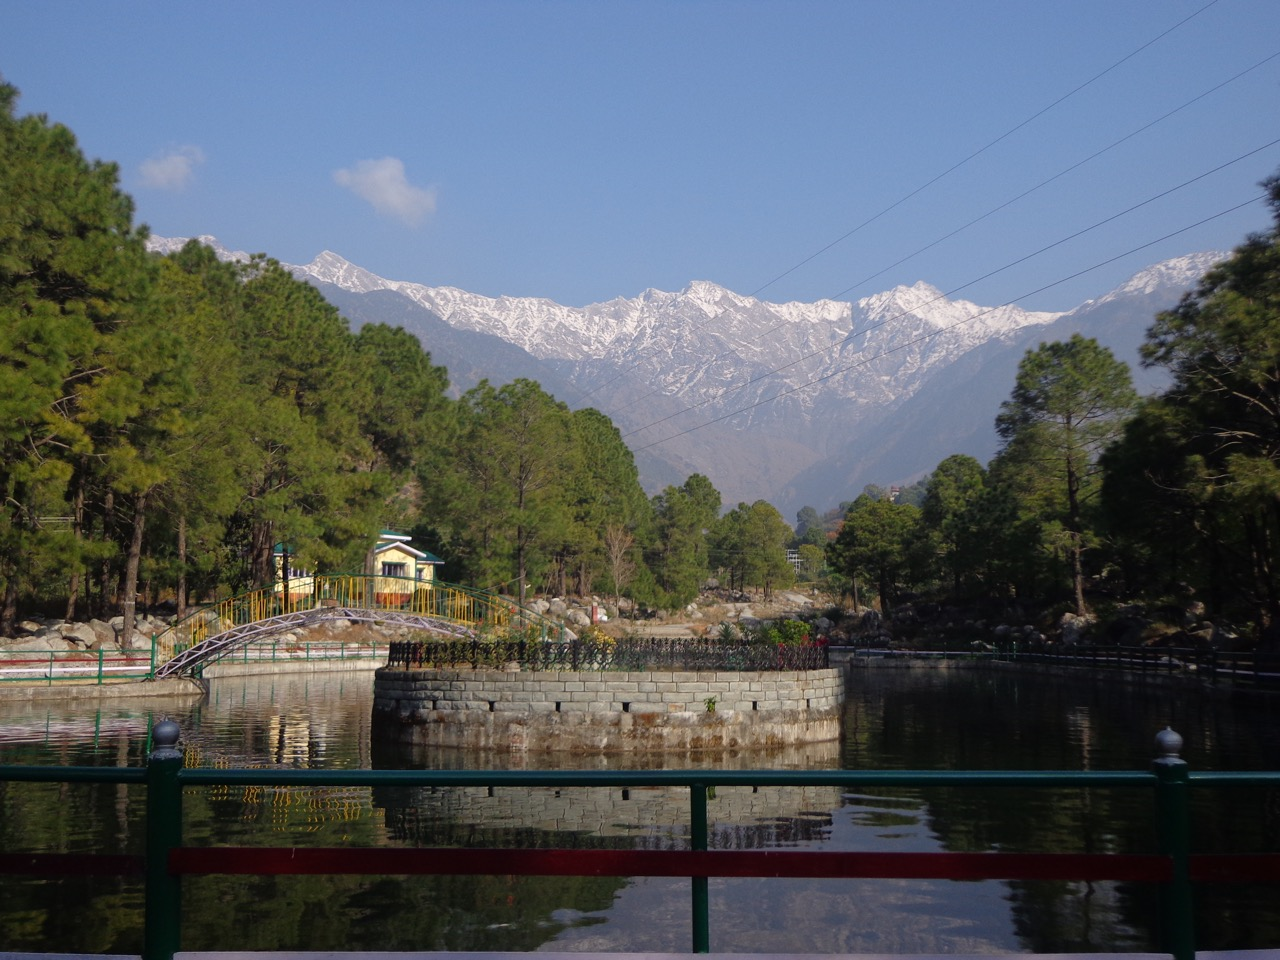 The boating area against the backdrop of Dhauladhar range.